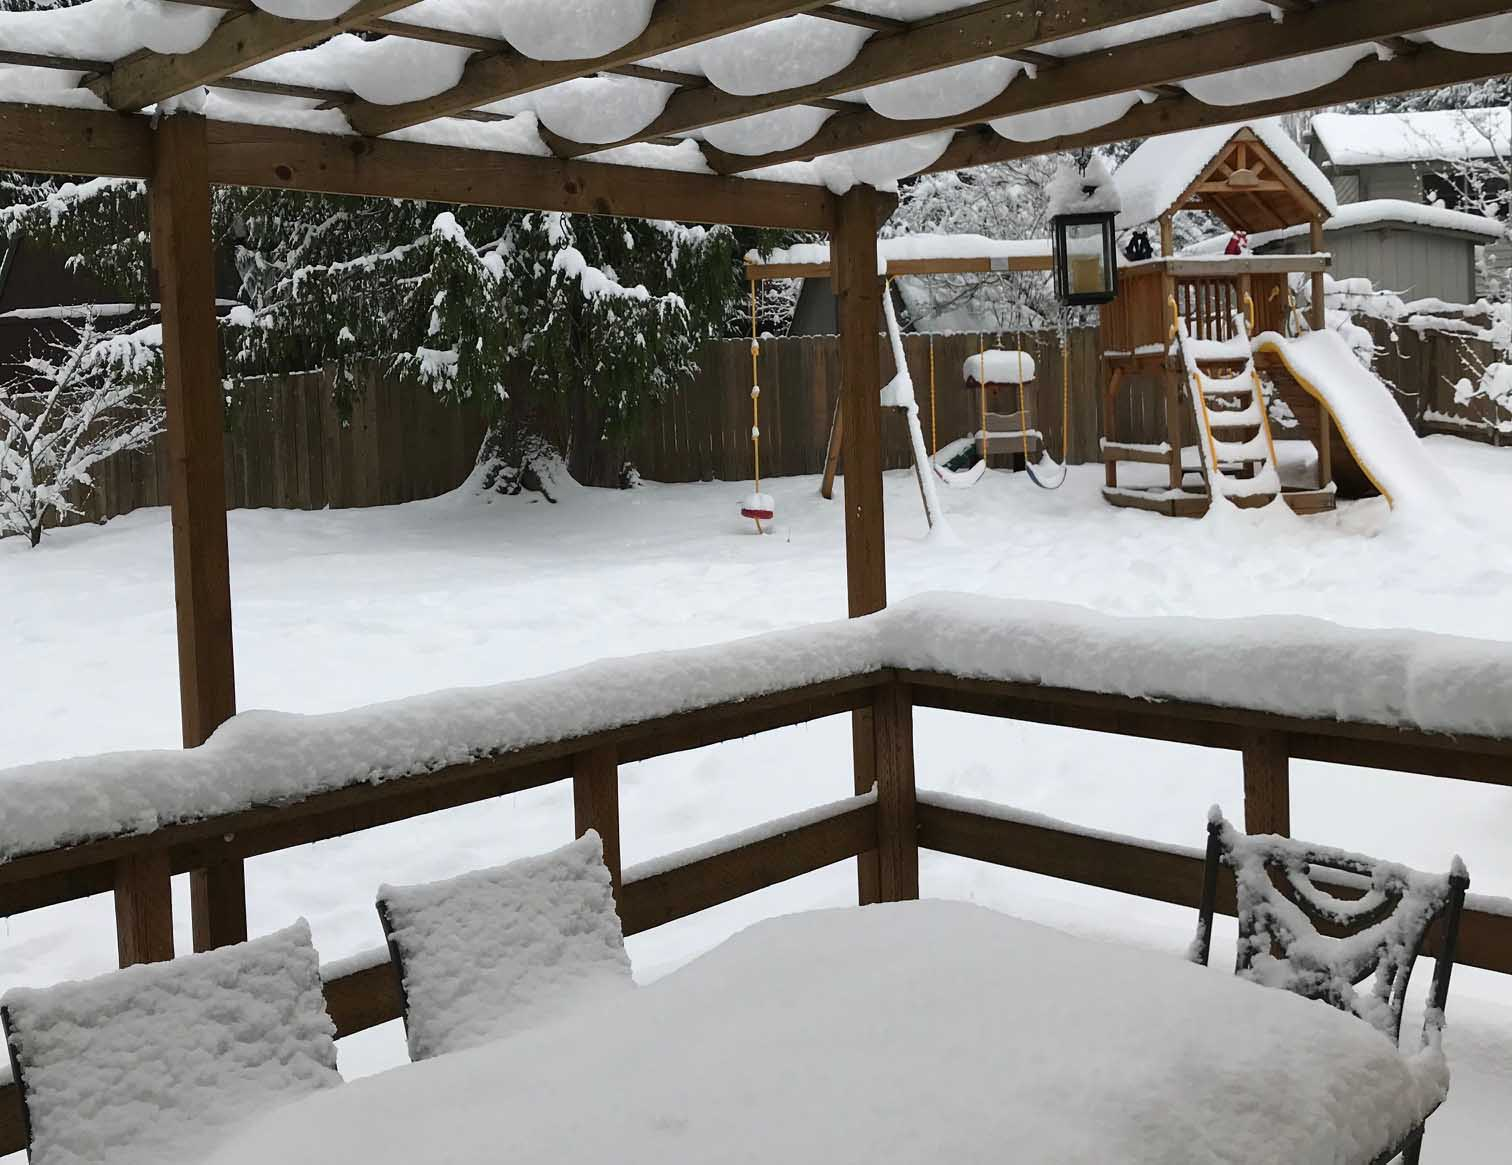 Seattle Events Calendar February 2019 February 2019: Seattle's snowiest month in 50 years   Seattle